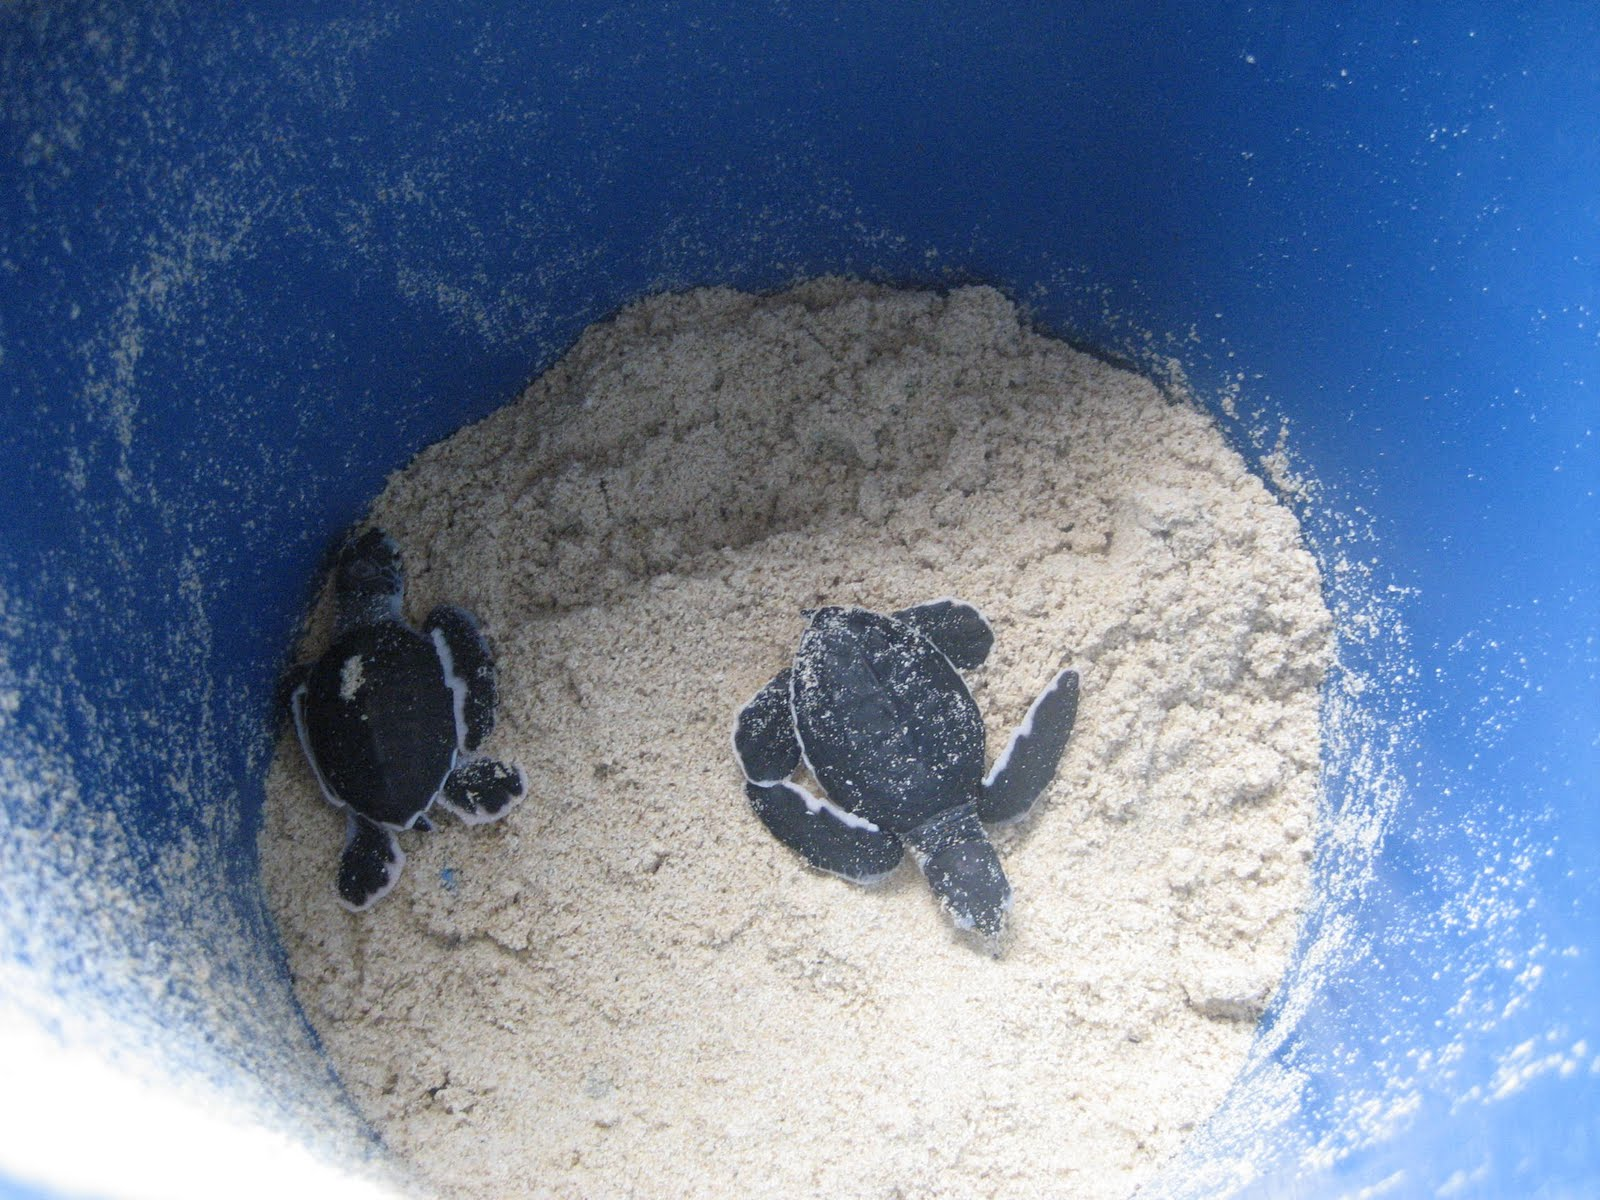 Pin Bing Baby Turtle Animal Wallpapers And Backgrounds 1600x1200